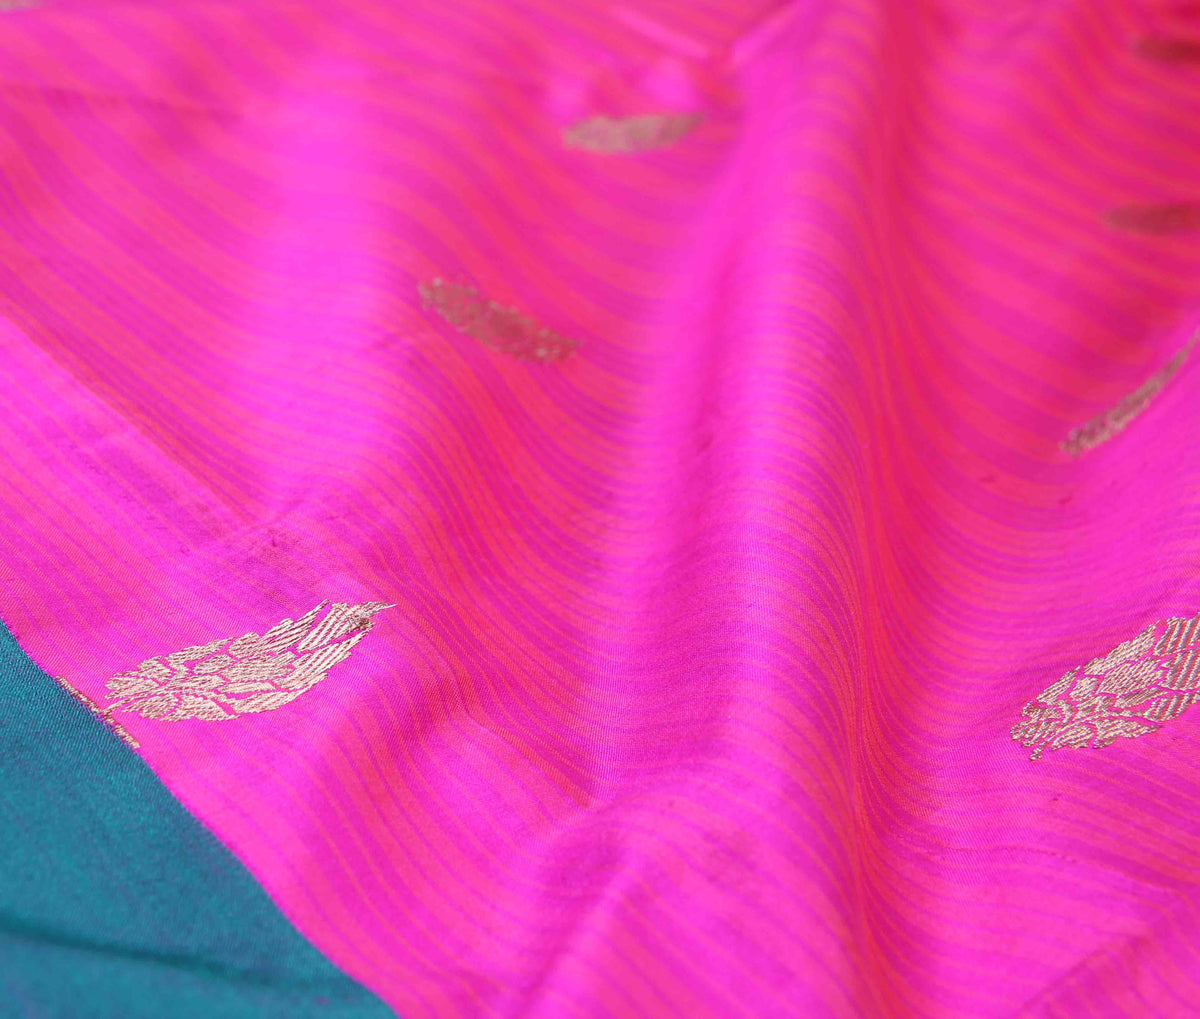 Pink Katan Silk Handwoven Banarasi saree with kalgi border (3) Close up